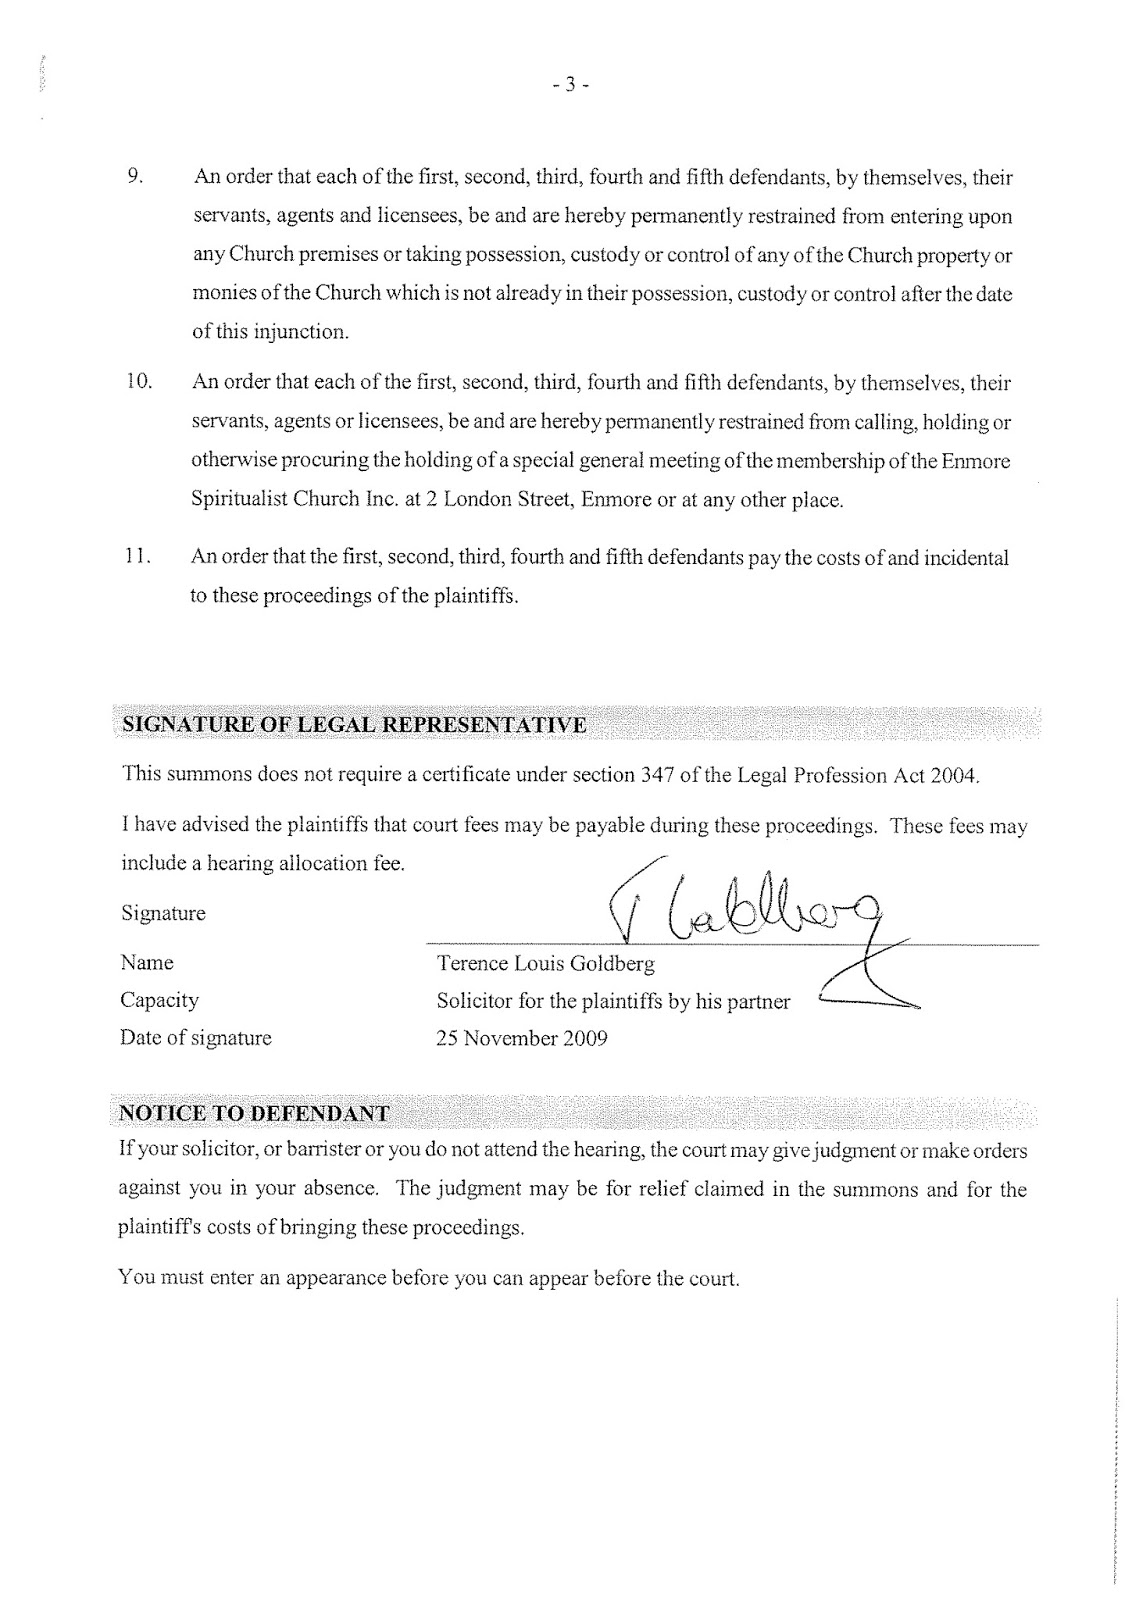 Filed Summons in relation to Supreme Court proceedings 2009/00291458-001 (then 5454/2009)